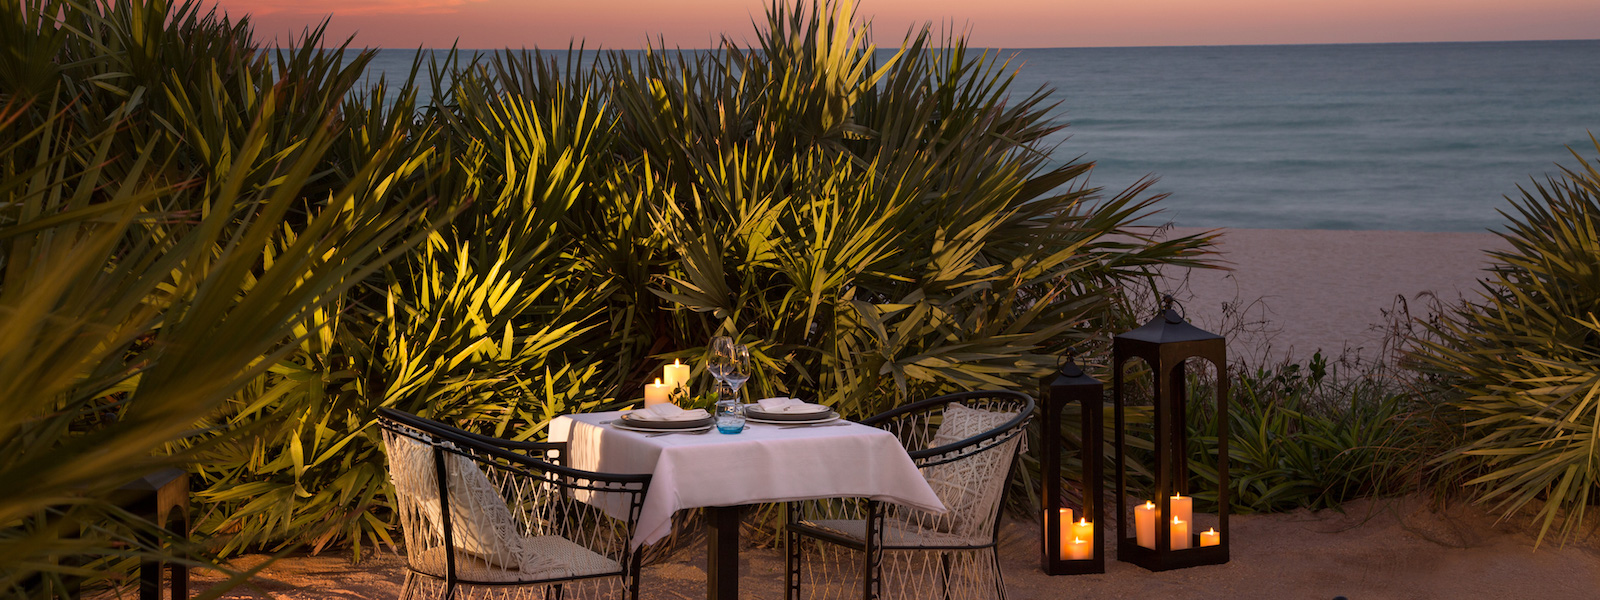 Solé Miami dining outside by the ocean